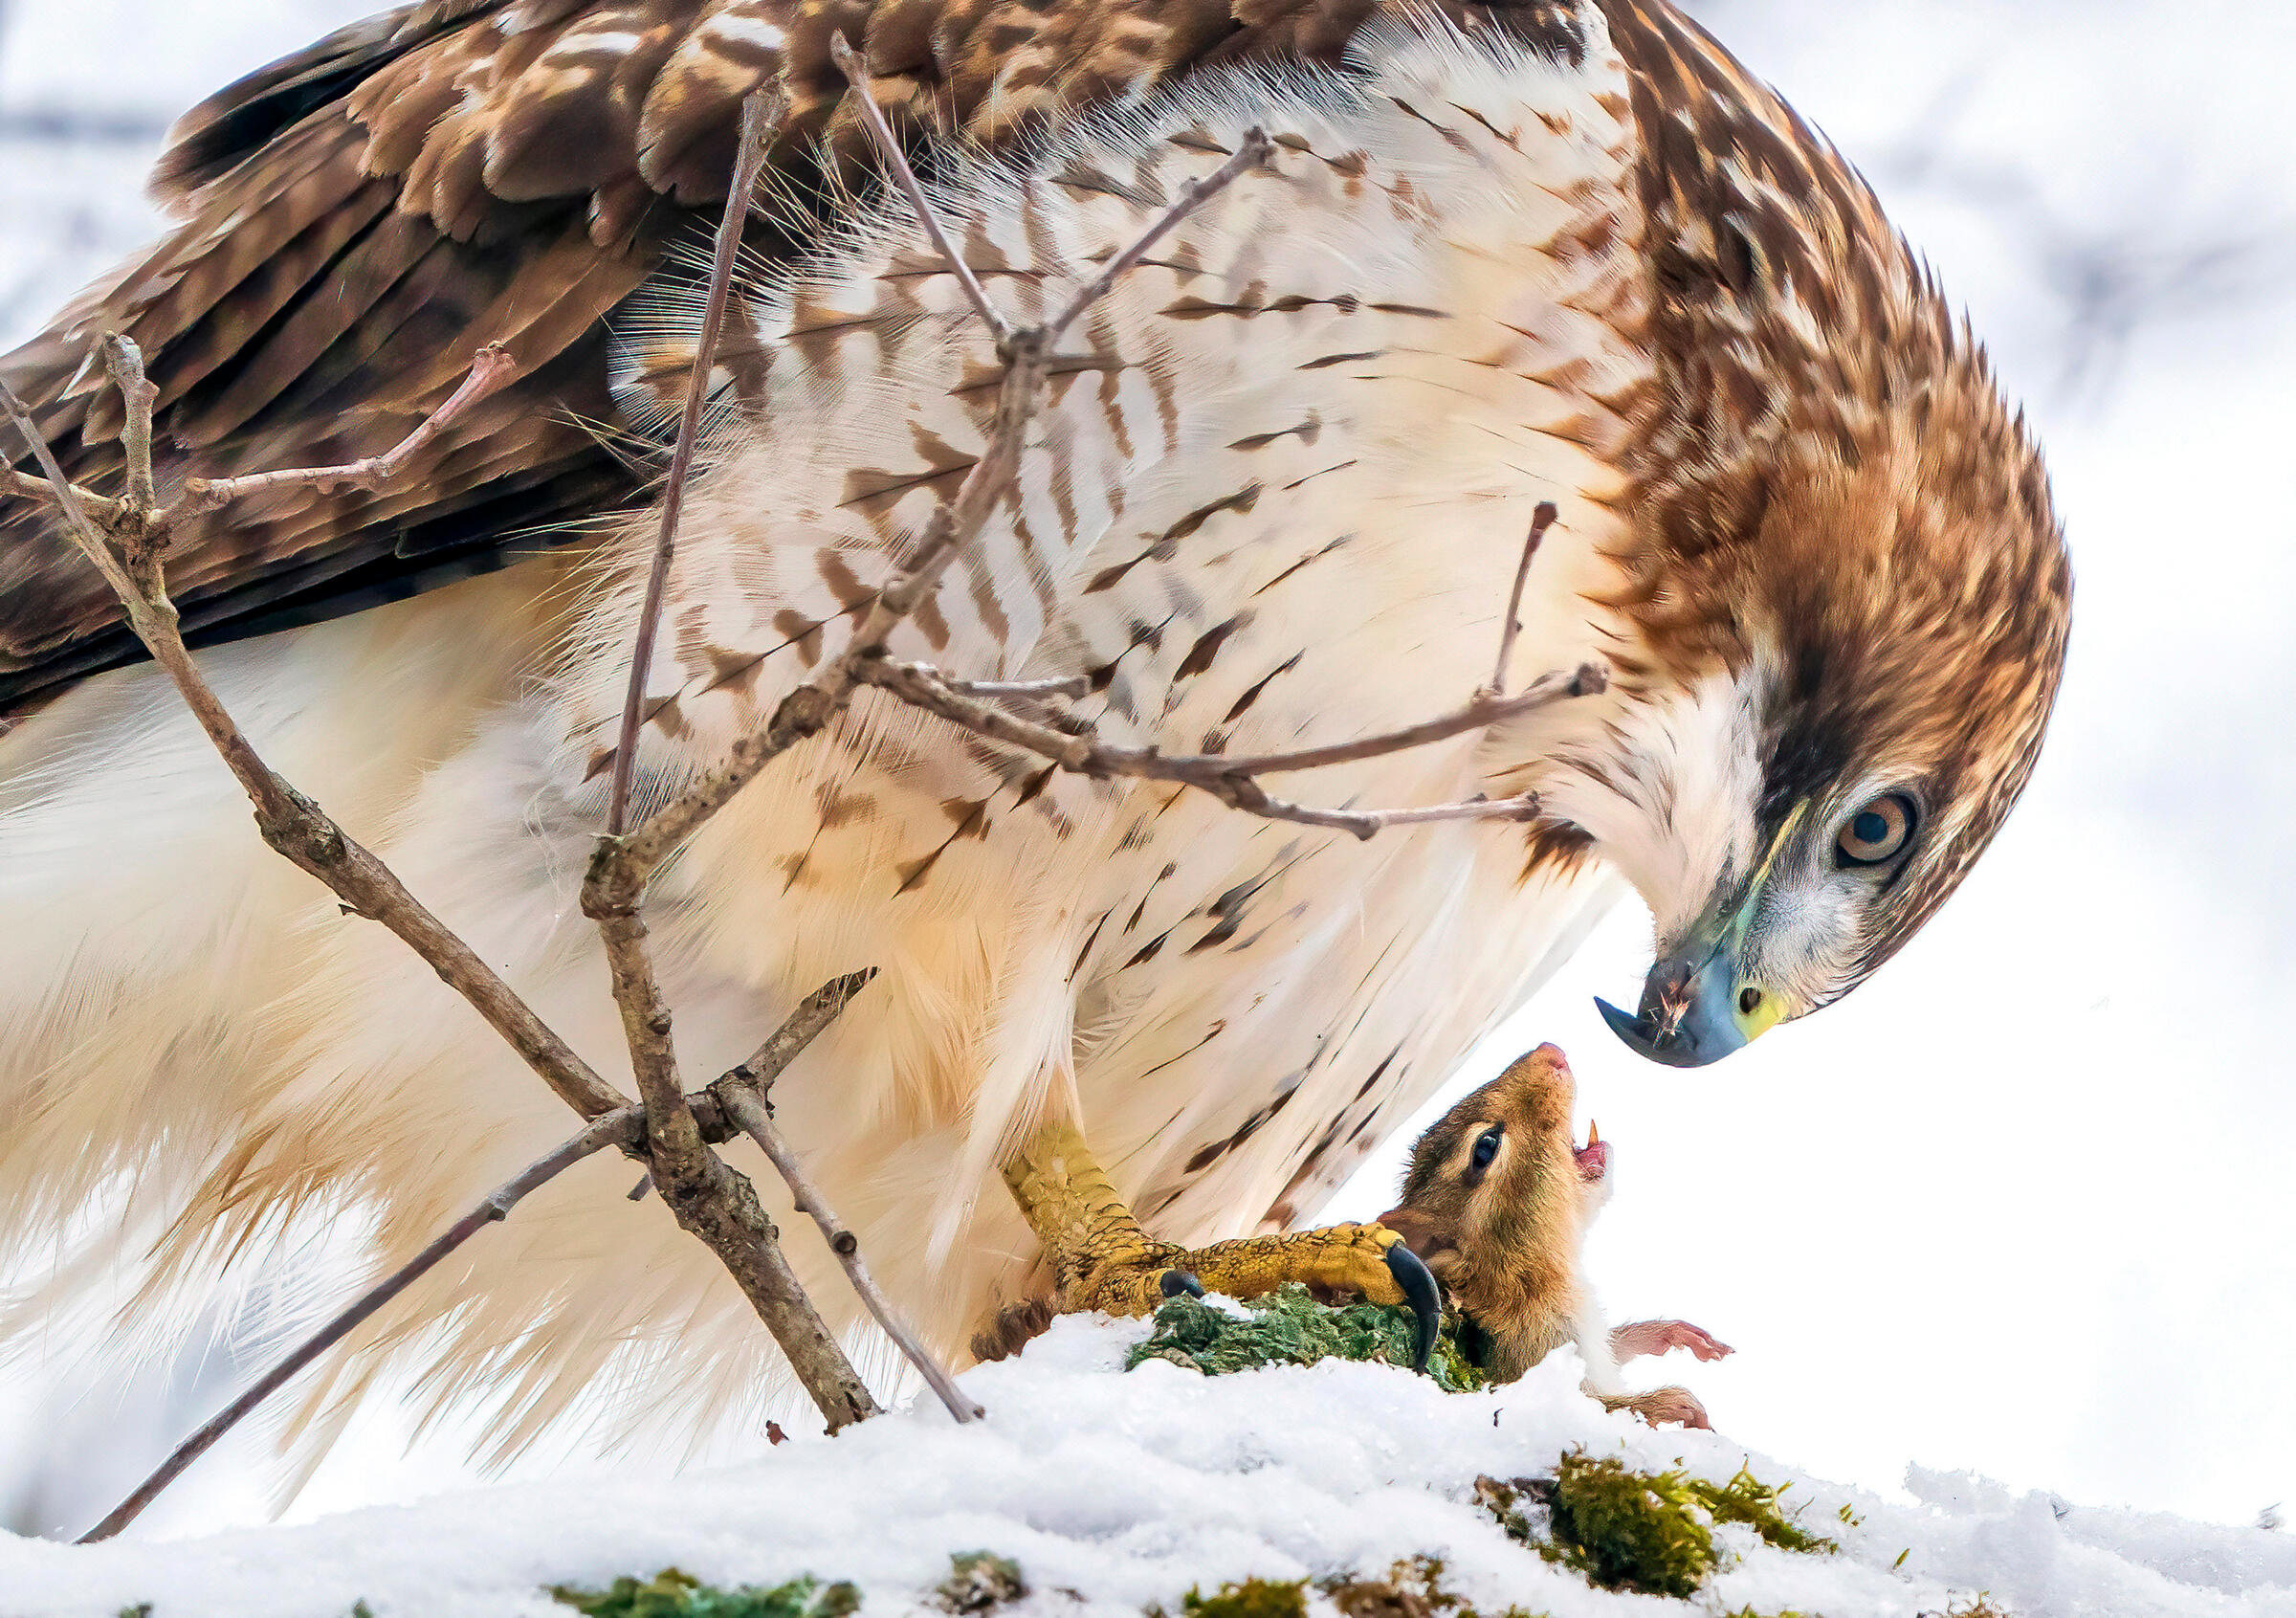 A Red-tailed Hawk holds an open-mouthed chipmunk in its yellow talons, the rodent's head and front paws peeking out from a snowy perch. The raptor's head bends low as it looks at its chipmunk prey, a piece of fur in its blue, pointed bill.